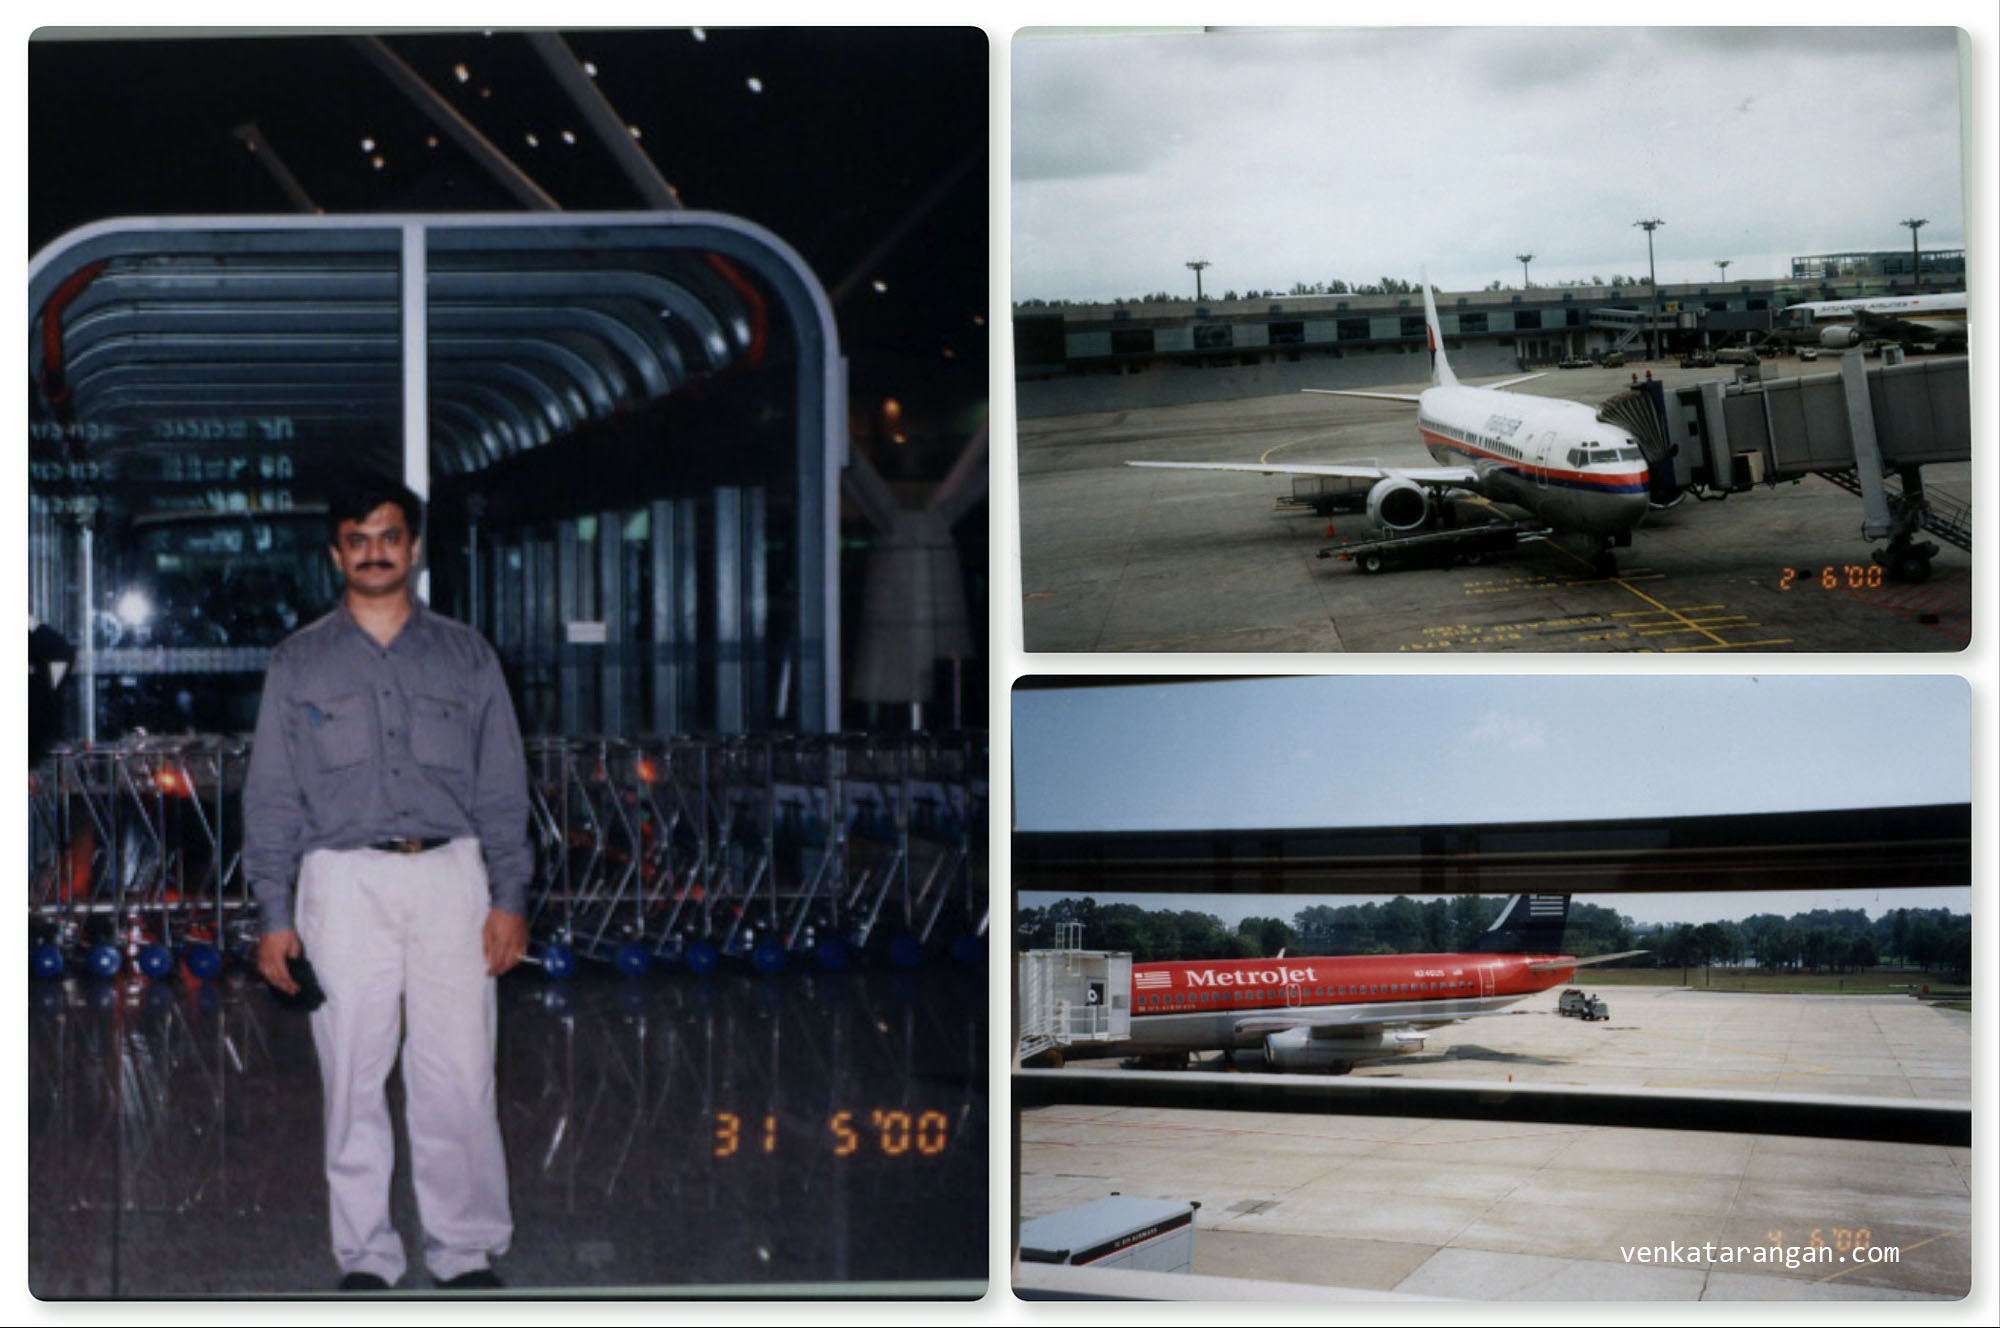 I had traveled to the USA via KL, Malaysia. Seen top left is Kuala Lumpur International Airport in 2000